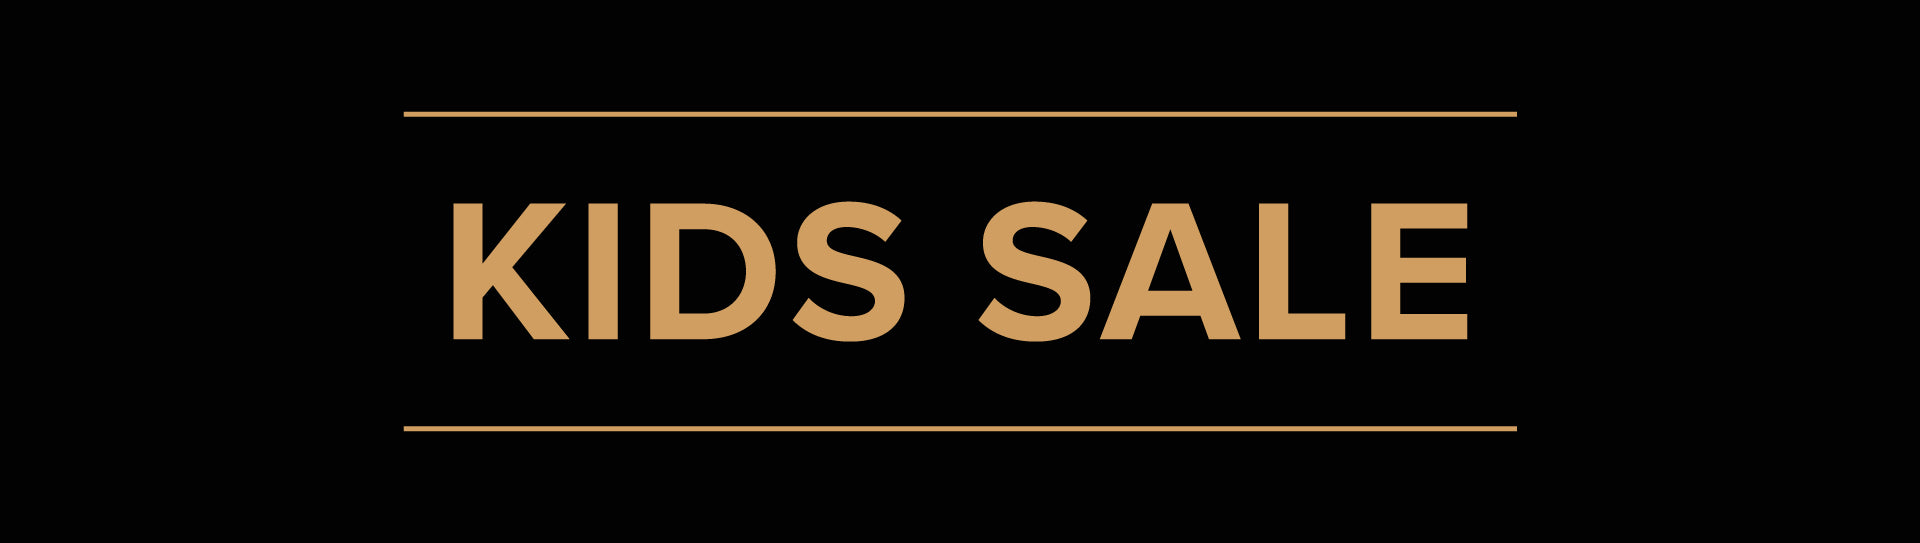 bd0c9ef57 Kids Clothing Sale - Shop Boys & Girls Clothes On Sale   ROOLEE – Tagged